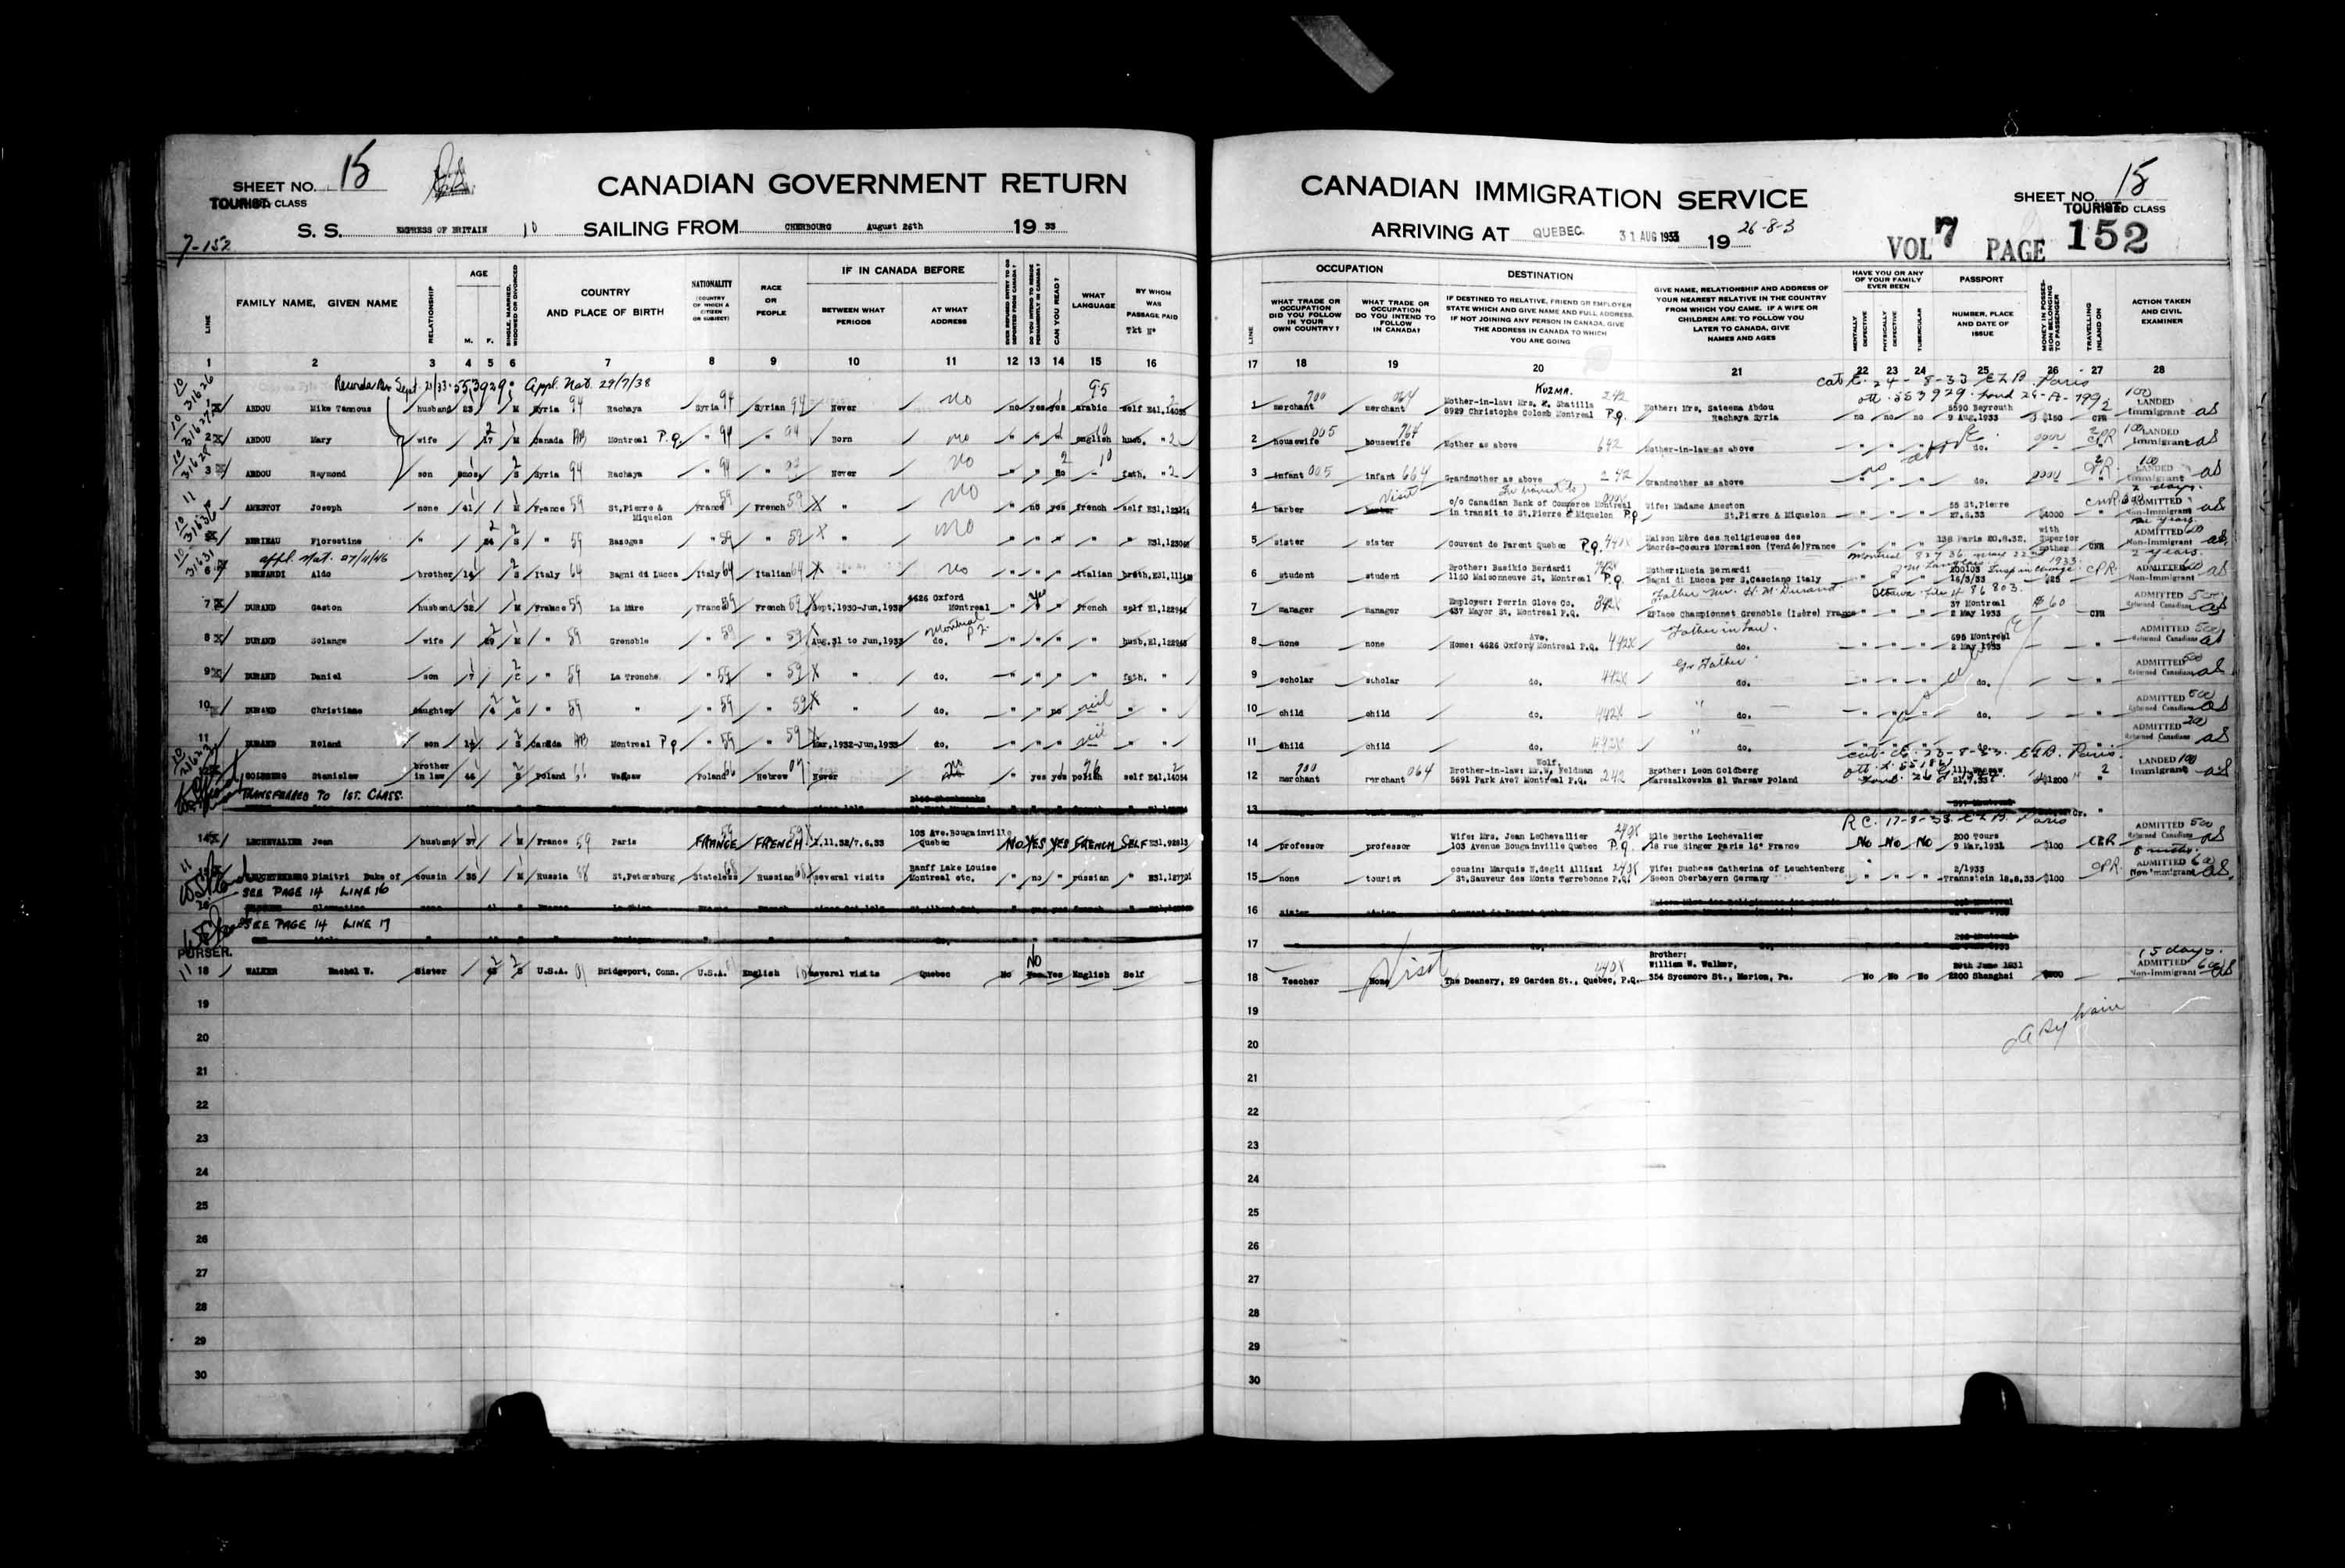 Title: Passenger Lists: Quebec City (1925-1935) - Mikan Number: 134839 - Microform: t-14784